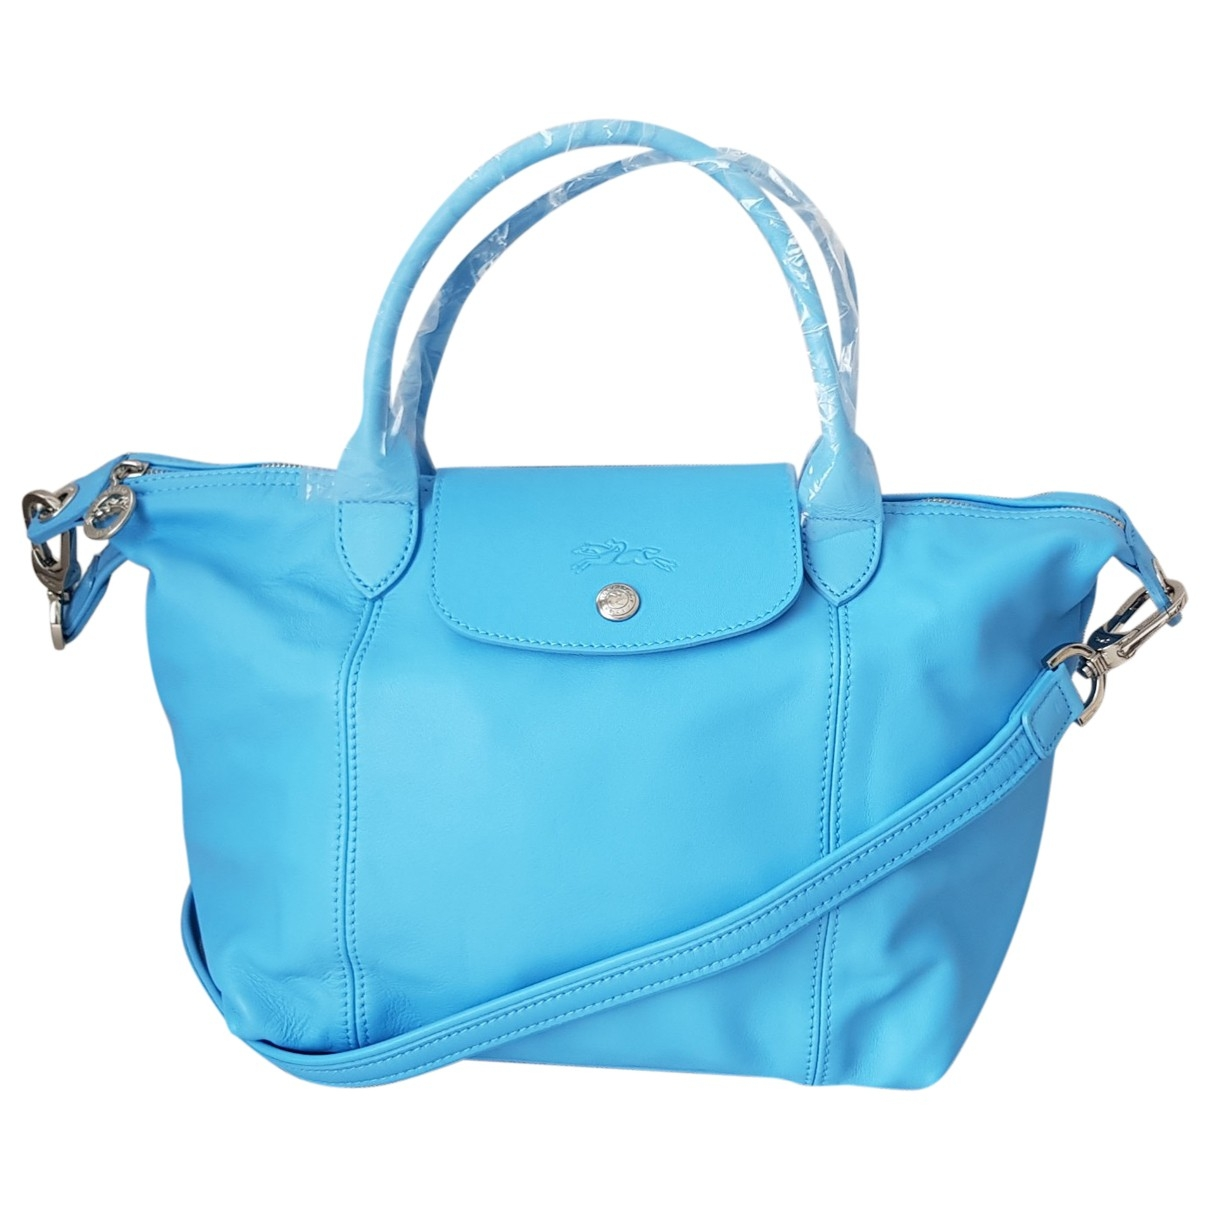 Longchamp Pliage  Blue Leather handbag for Women \N